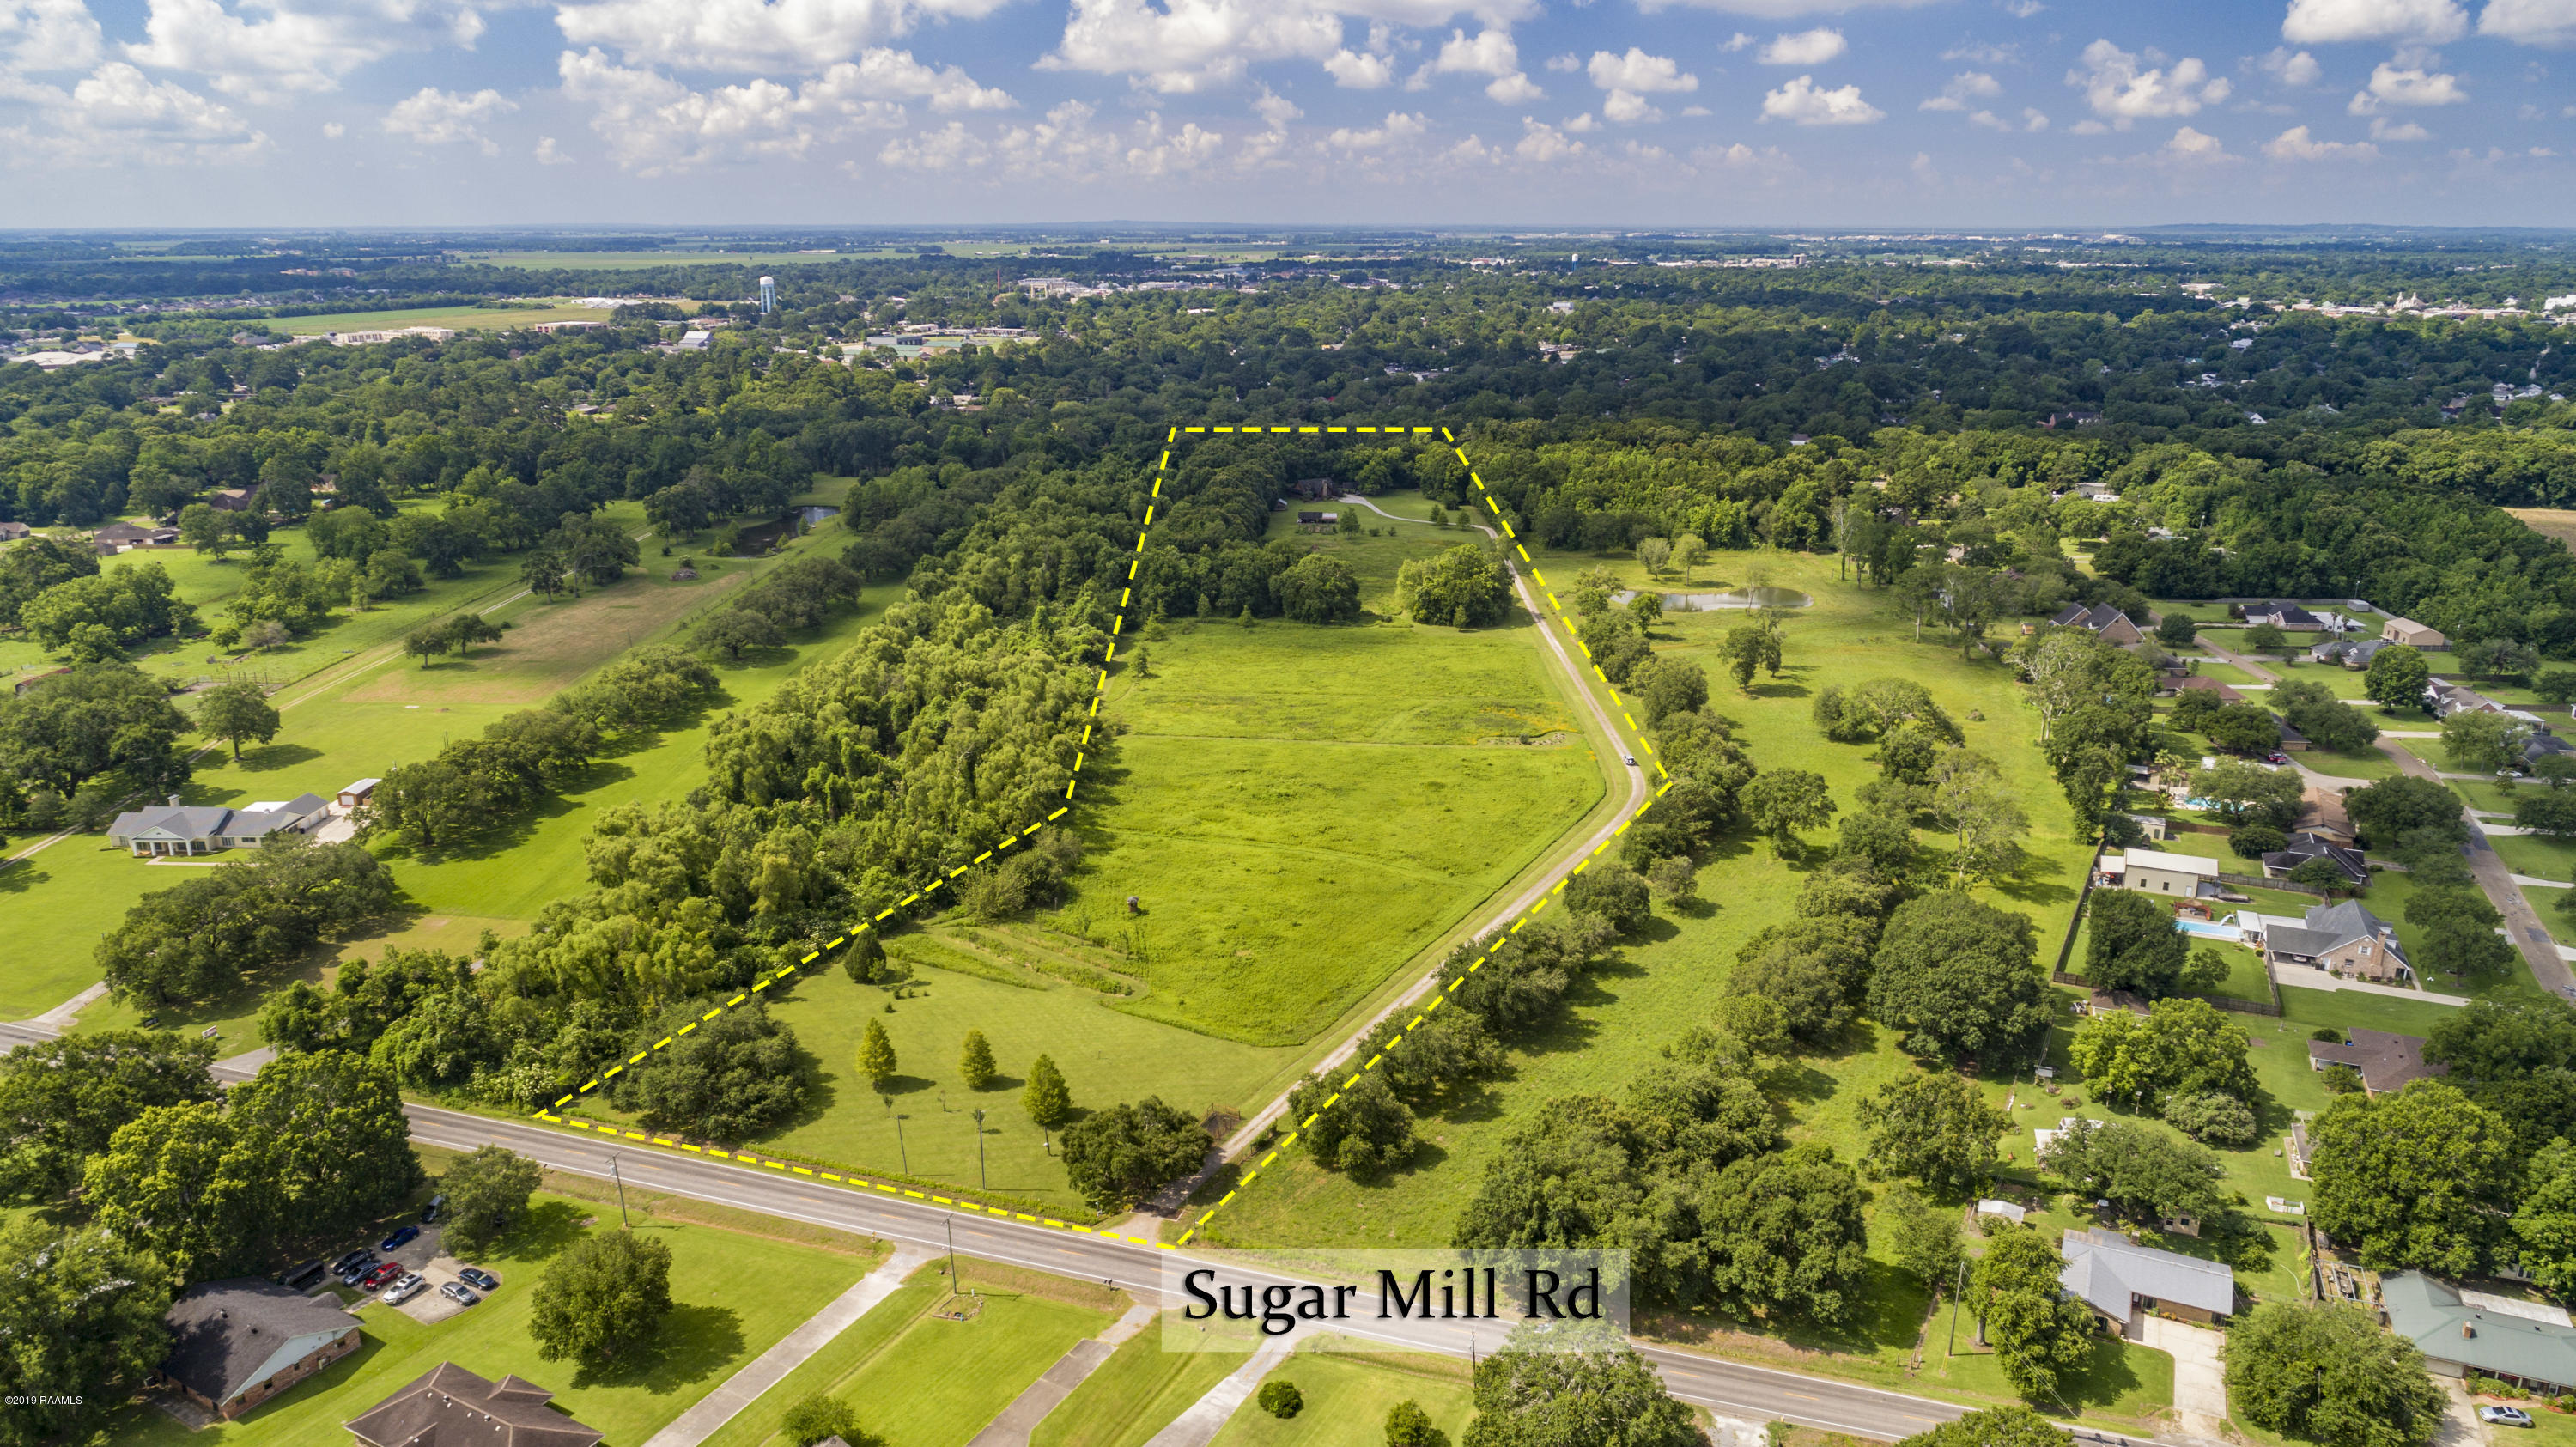 2114 Sugar Mill Road, New Iberia, LA 70563 Photo #39